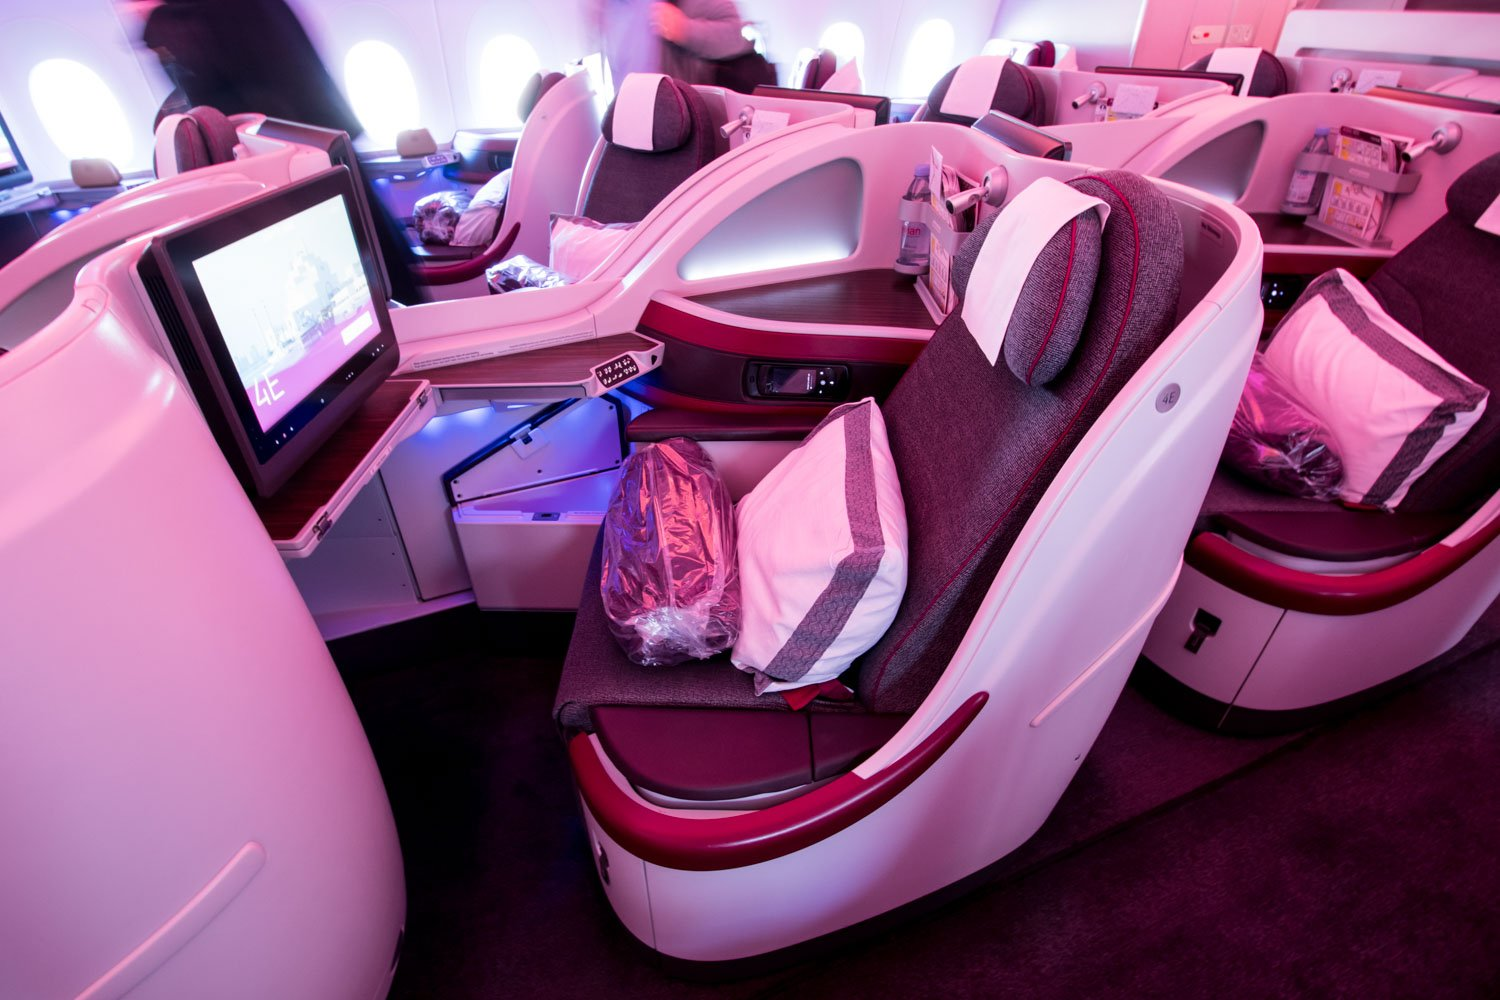 Center Pair of Reverse Herringbone Seats on Qatar Airways A350-900